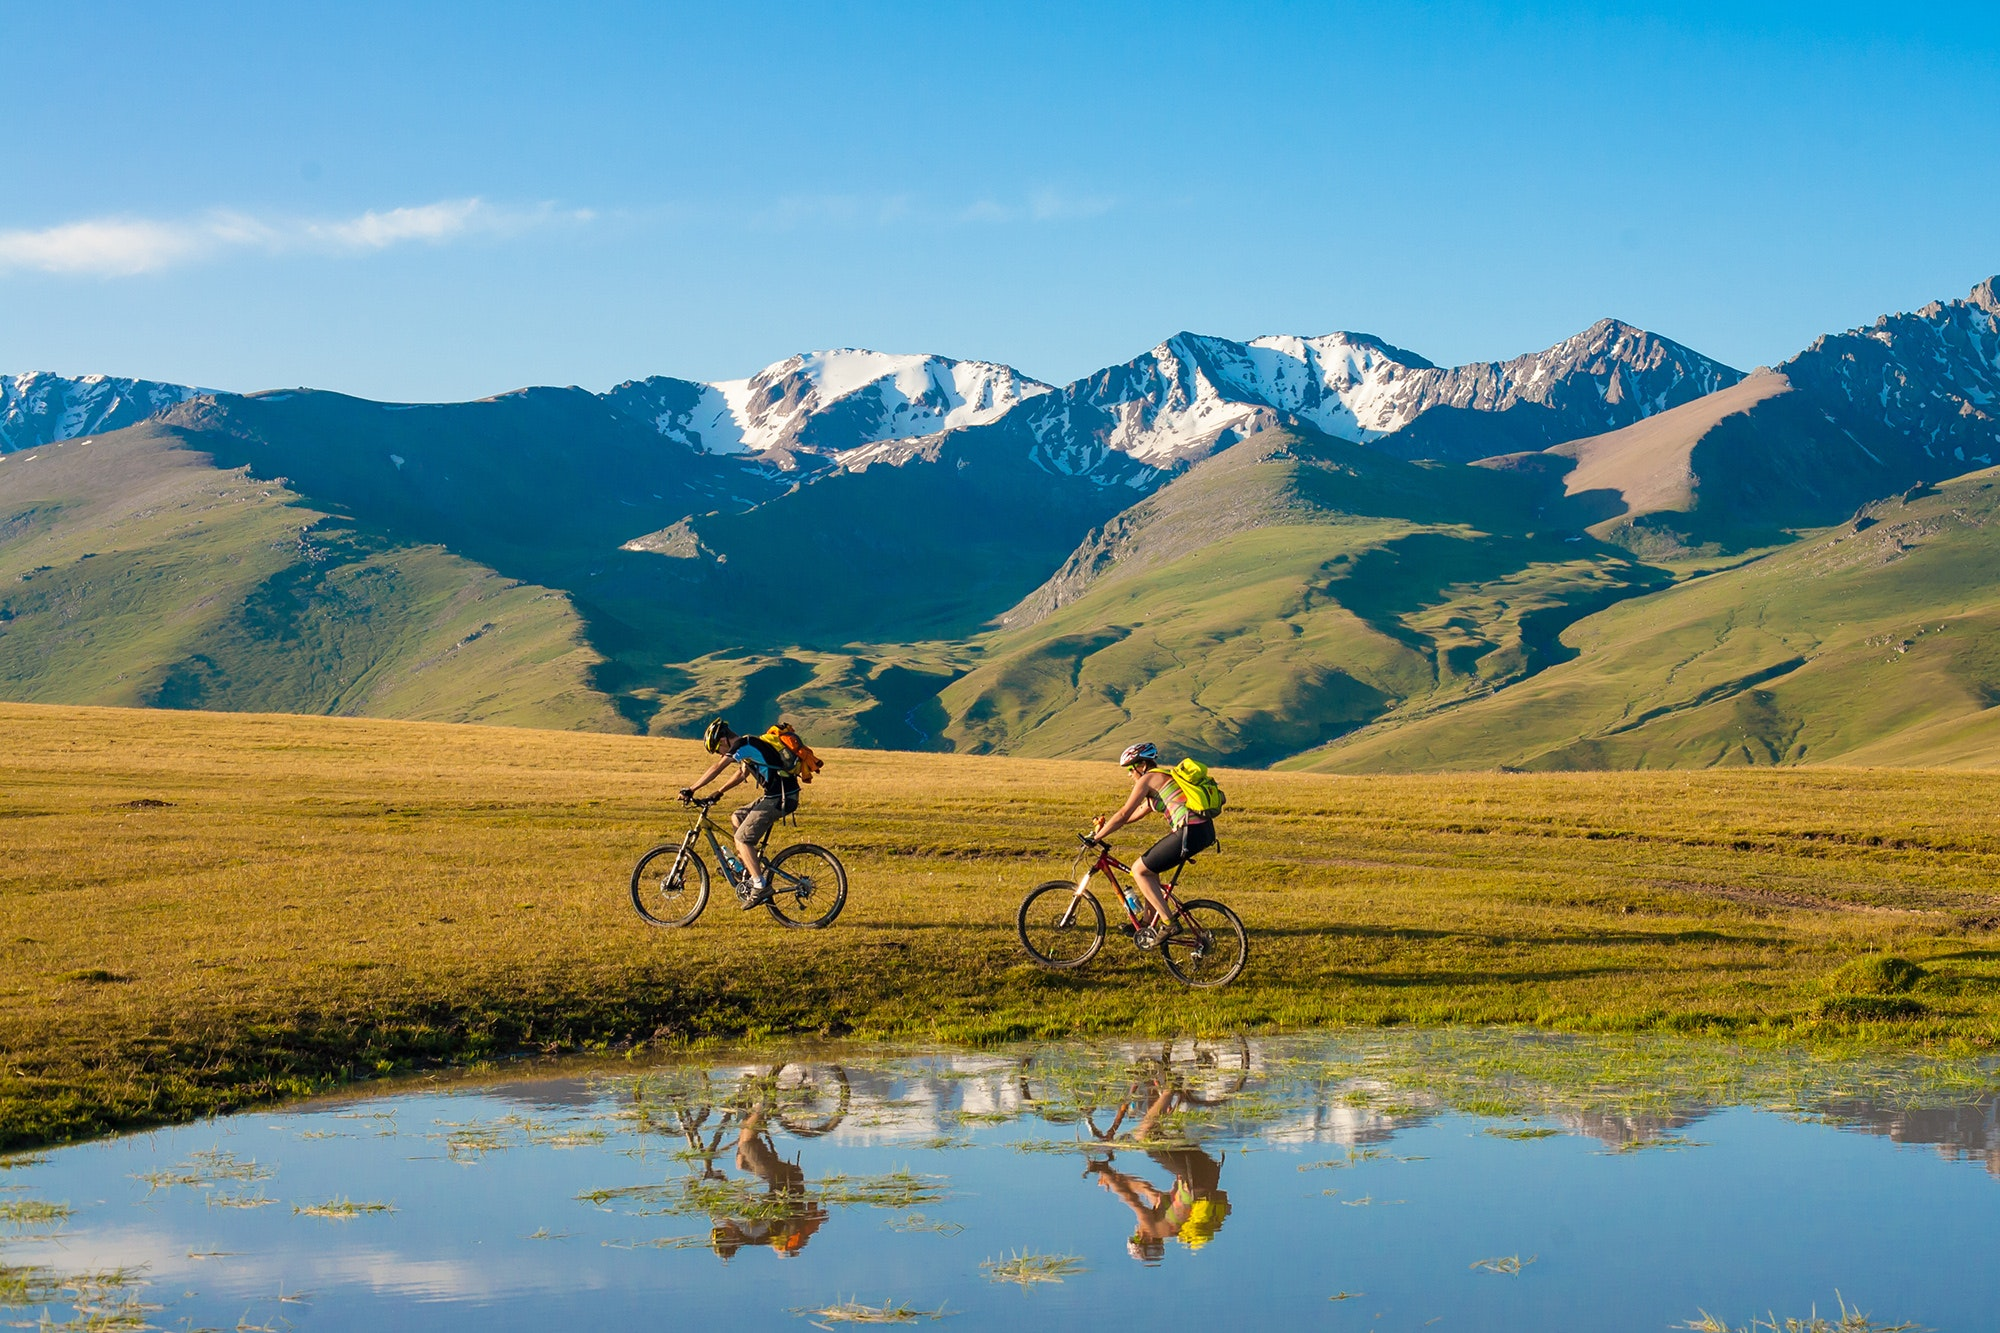 Everyone from enthusiasts to casual bikers can enjoy a cycling trip.